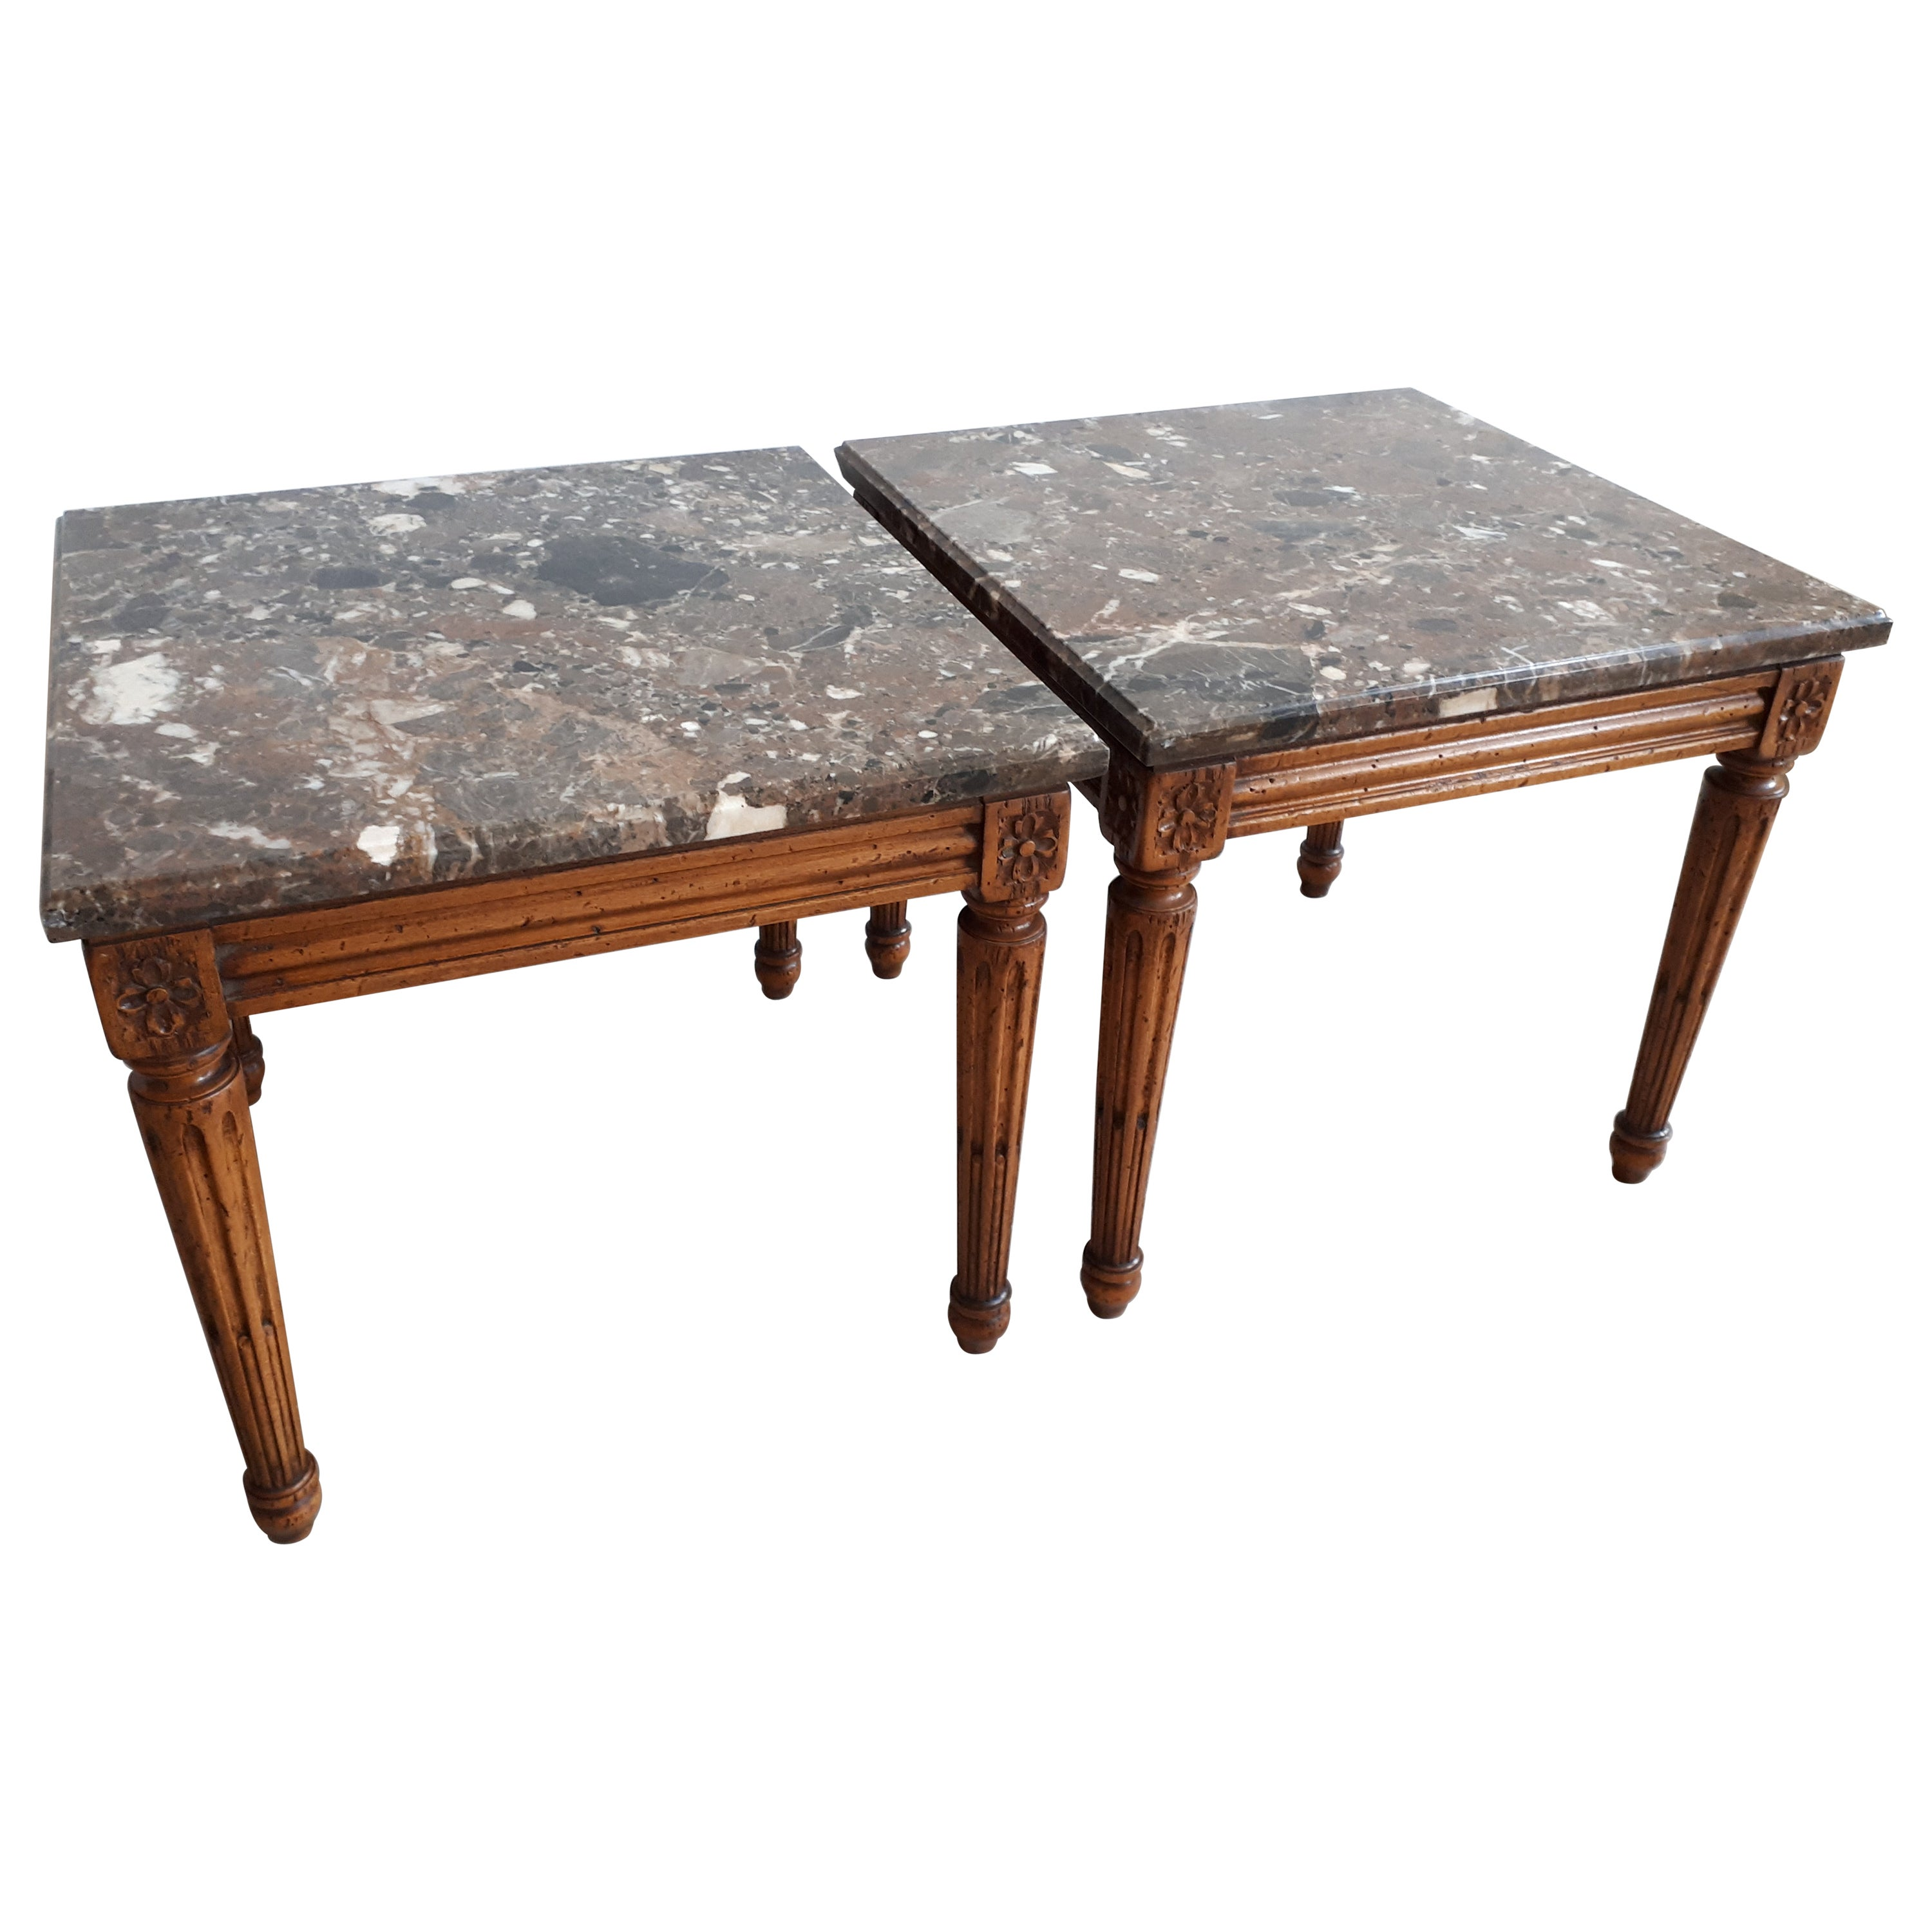 French Louis XVI Style Marble Nightstands or Ends Table, Pair